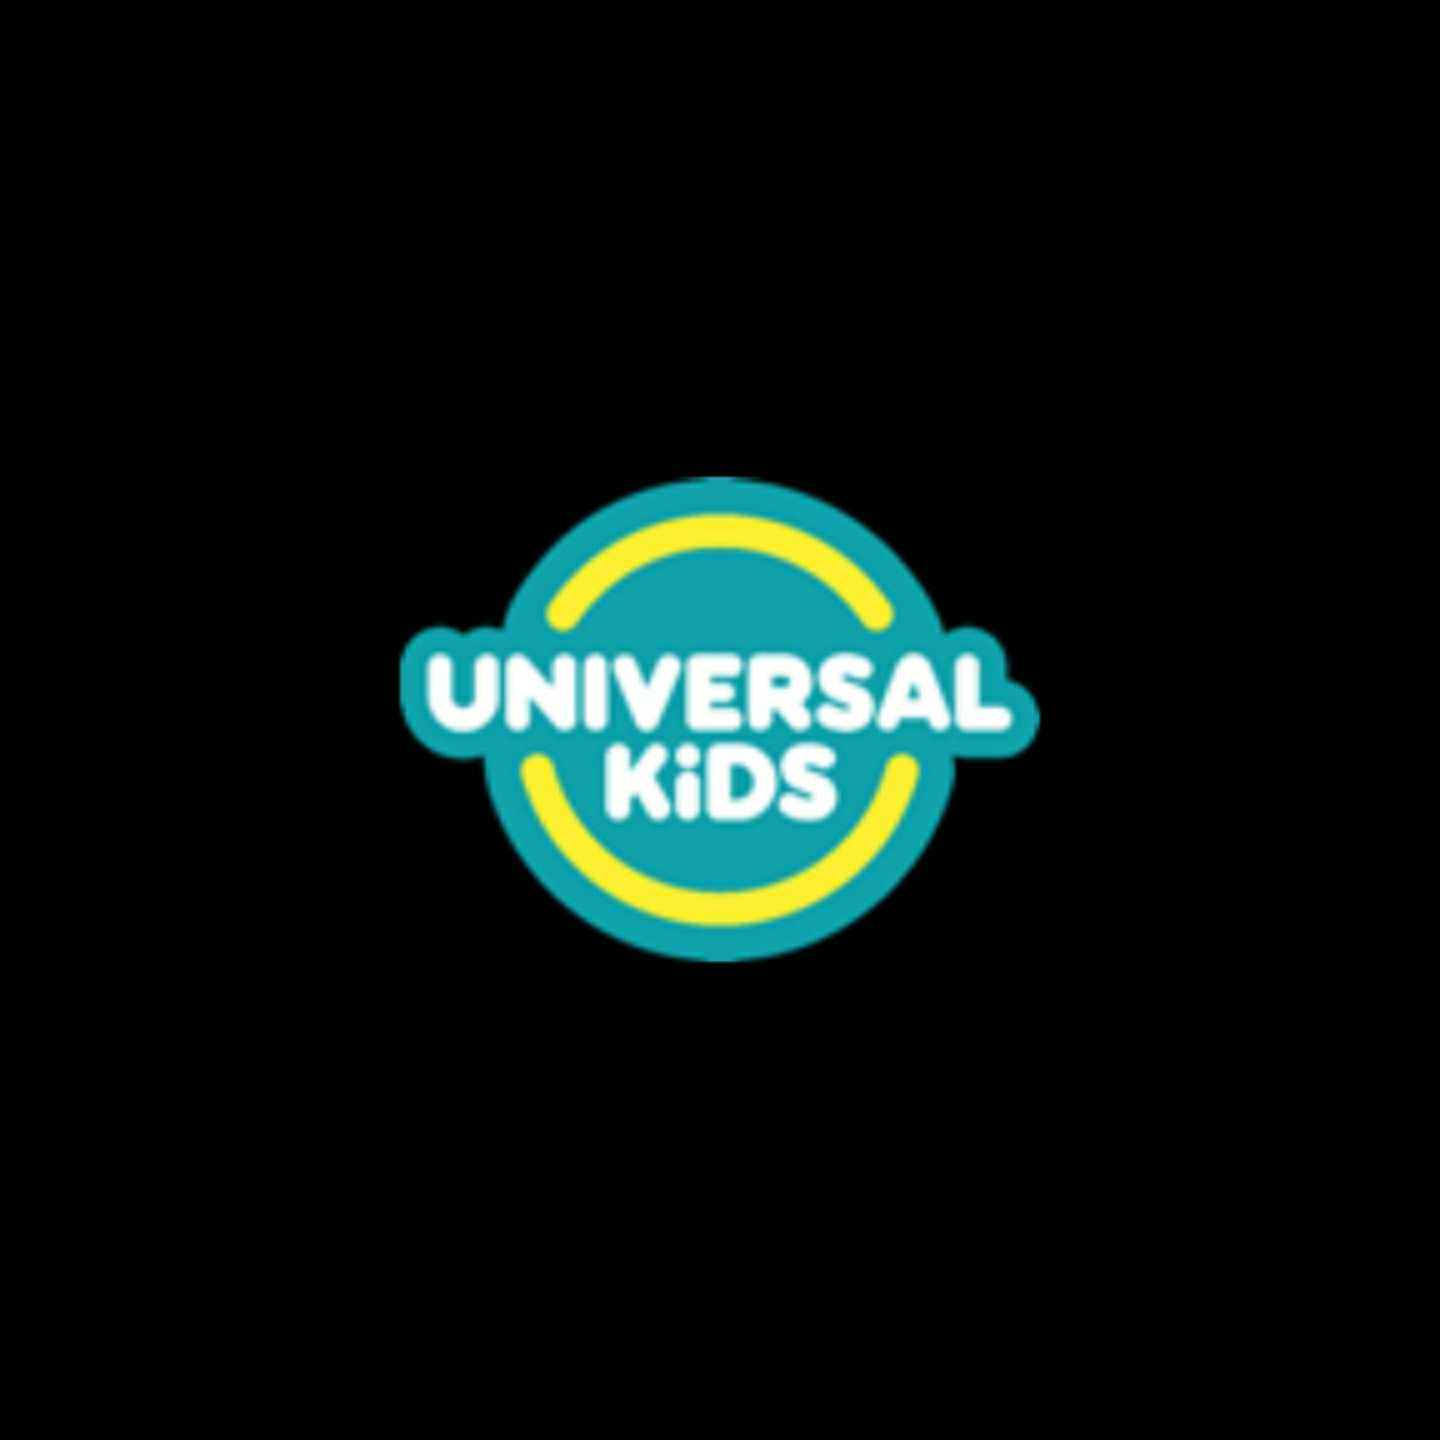 360,360 mag,360 Magazine,animation,cartoons,Children,elementary,family,fun,kids,kindergarten,middle school,nbc,network television,powerbirds,Premiere,preschool,toddlers,TV Series,tv show,Universal Kids,Universal Studios,Vaughn Lowery,youth,generation z